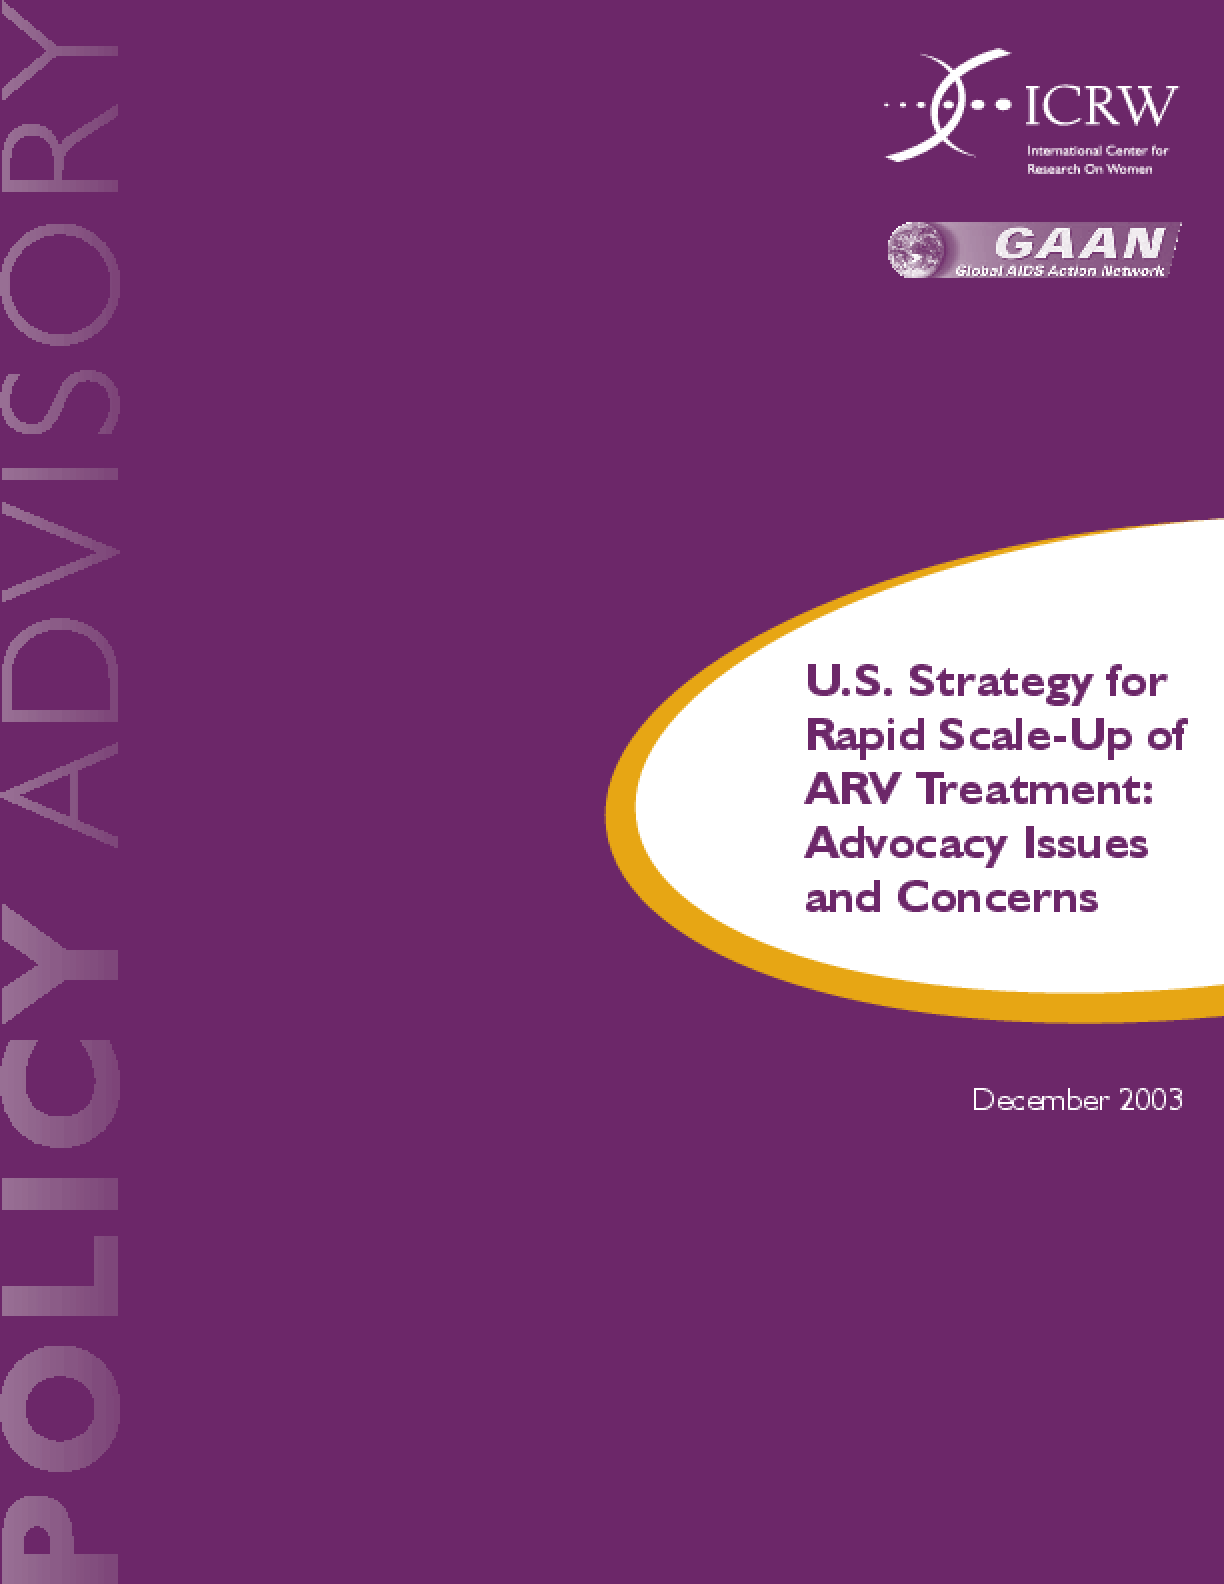 U.S. Strategy for Rapid Scale-Up of ARV Treatment: Advocacy Issues and Concerns